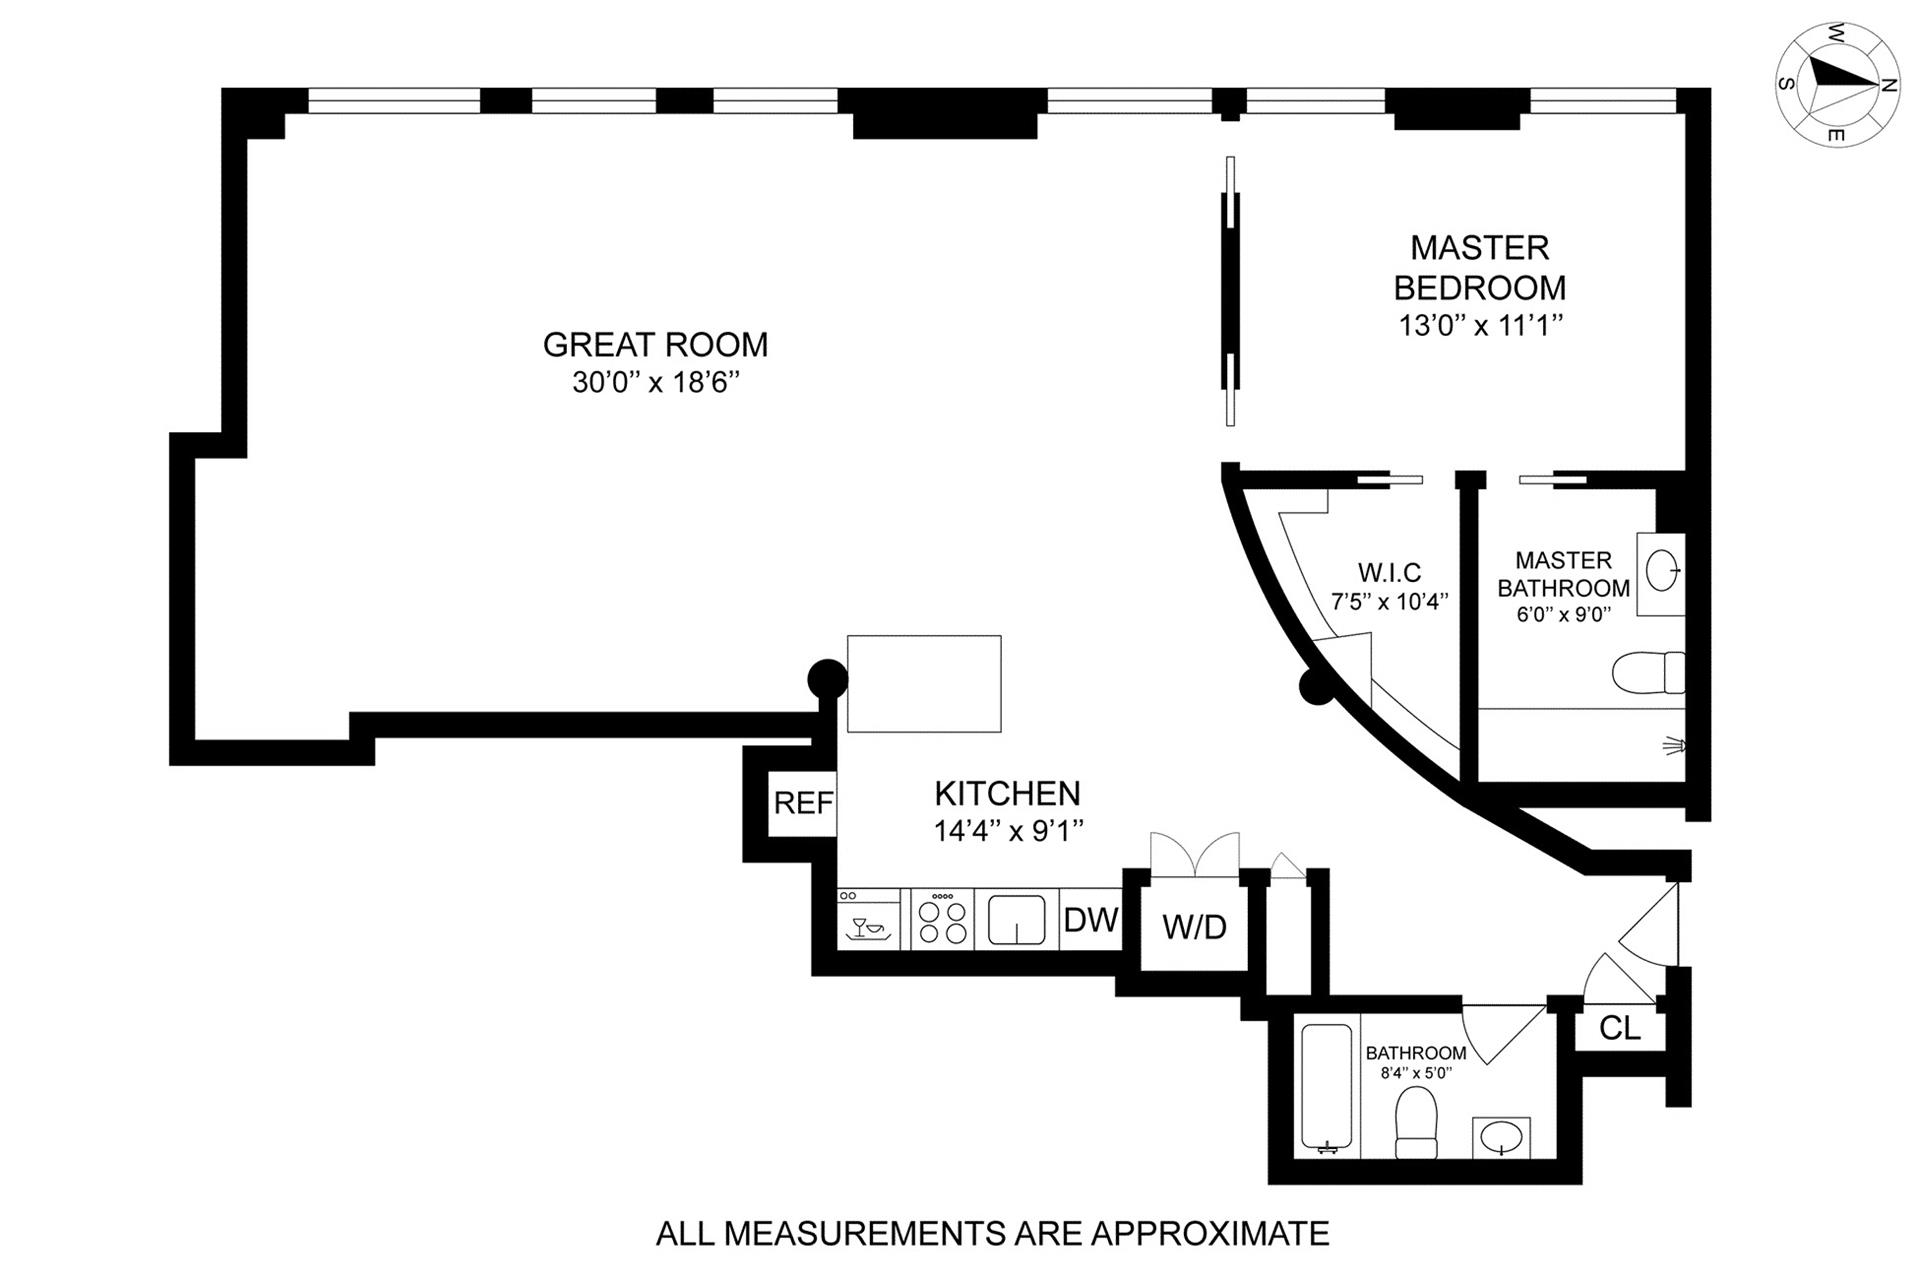 Floor plan of 10 Bleecker St, 5D - NoHo, New York